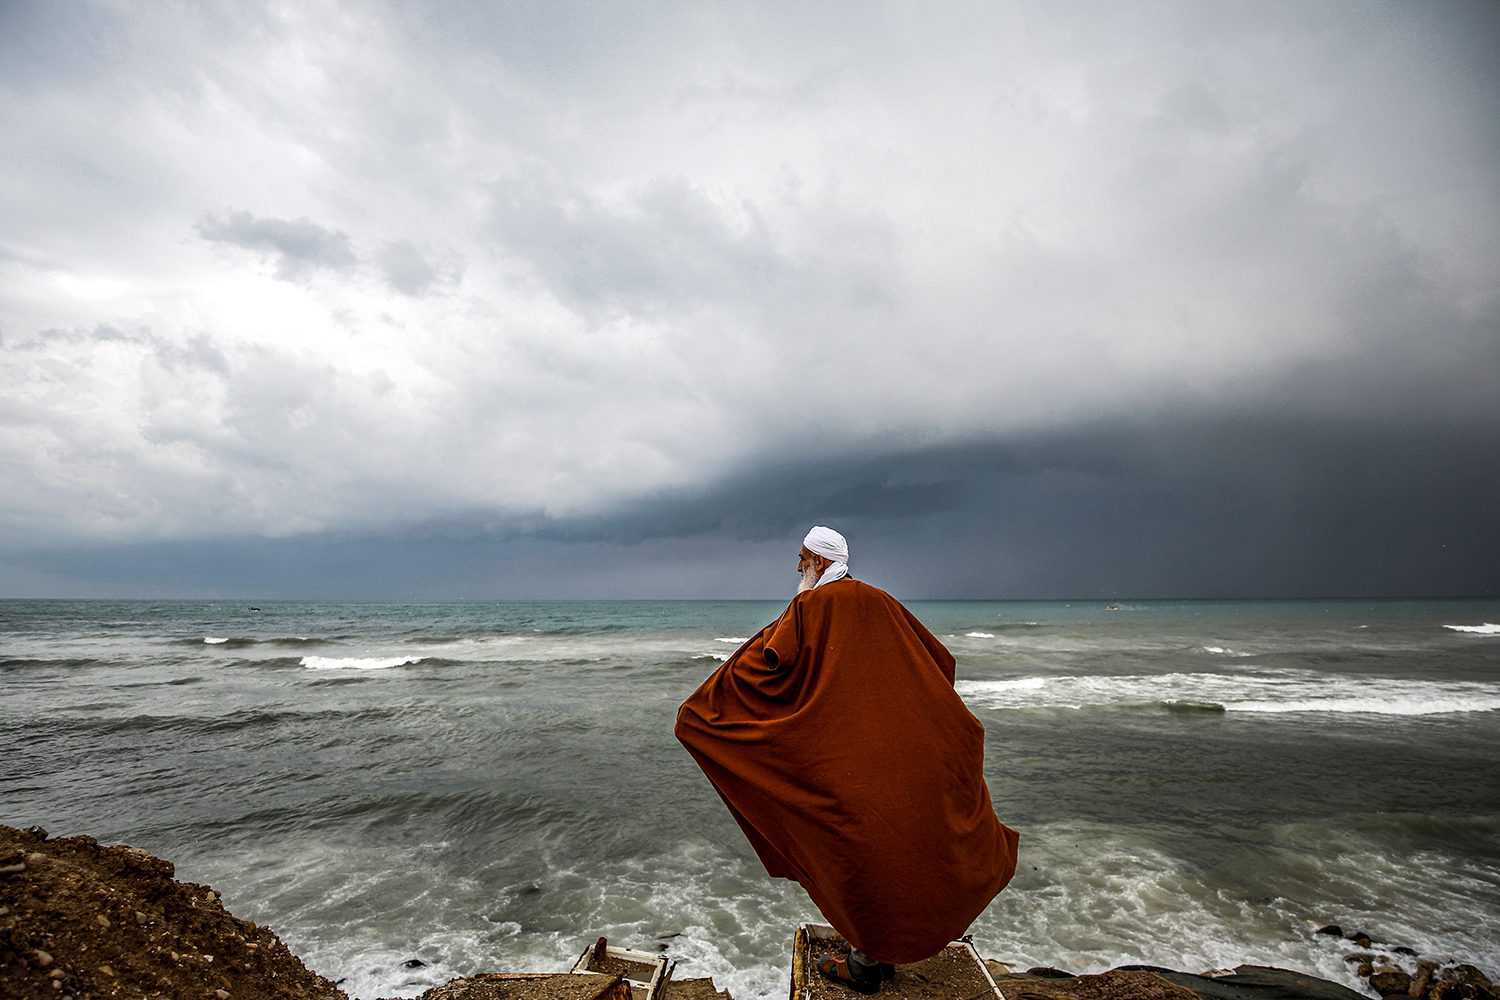 A Palestinian man stands on a beach during stormy weather near his home at al-Shati camp for Palestinian refugees in Gaza City on Jan. 20. MOHAMMED ABED/AFP via Getty Images